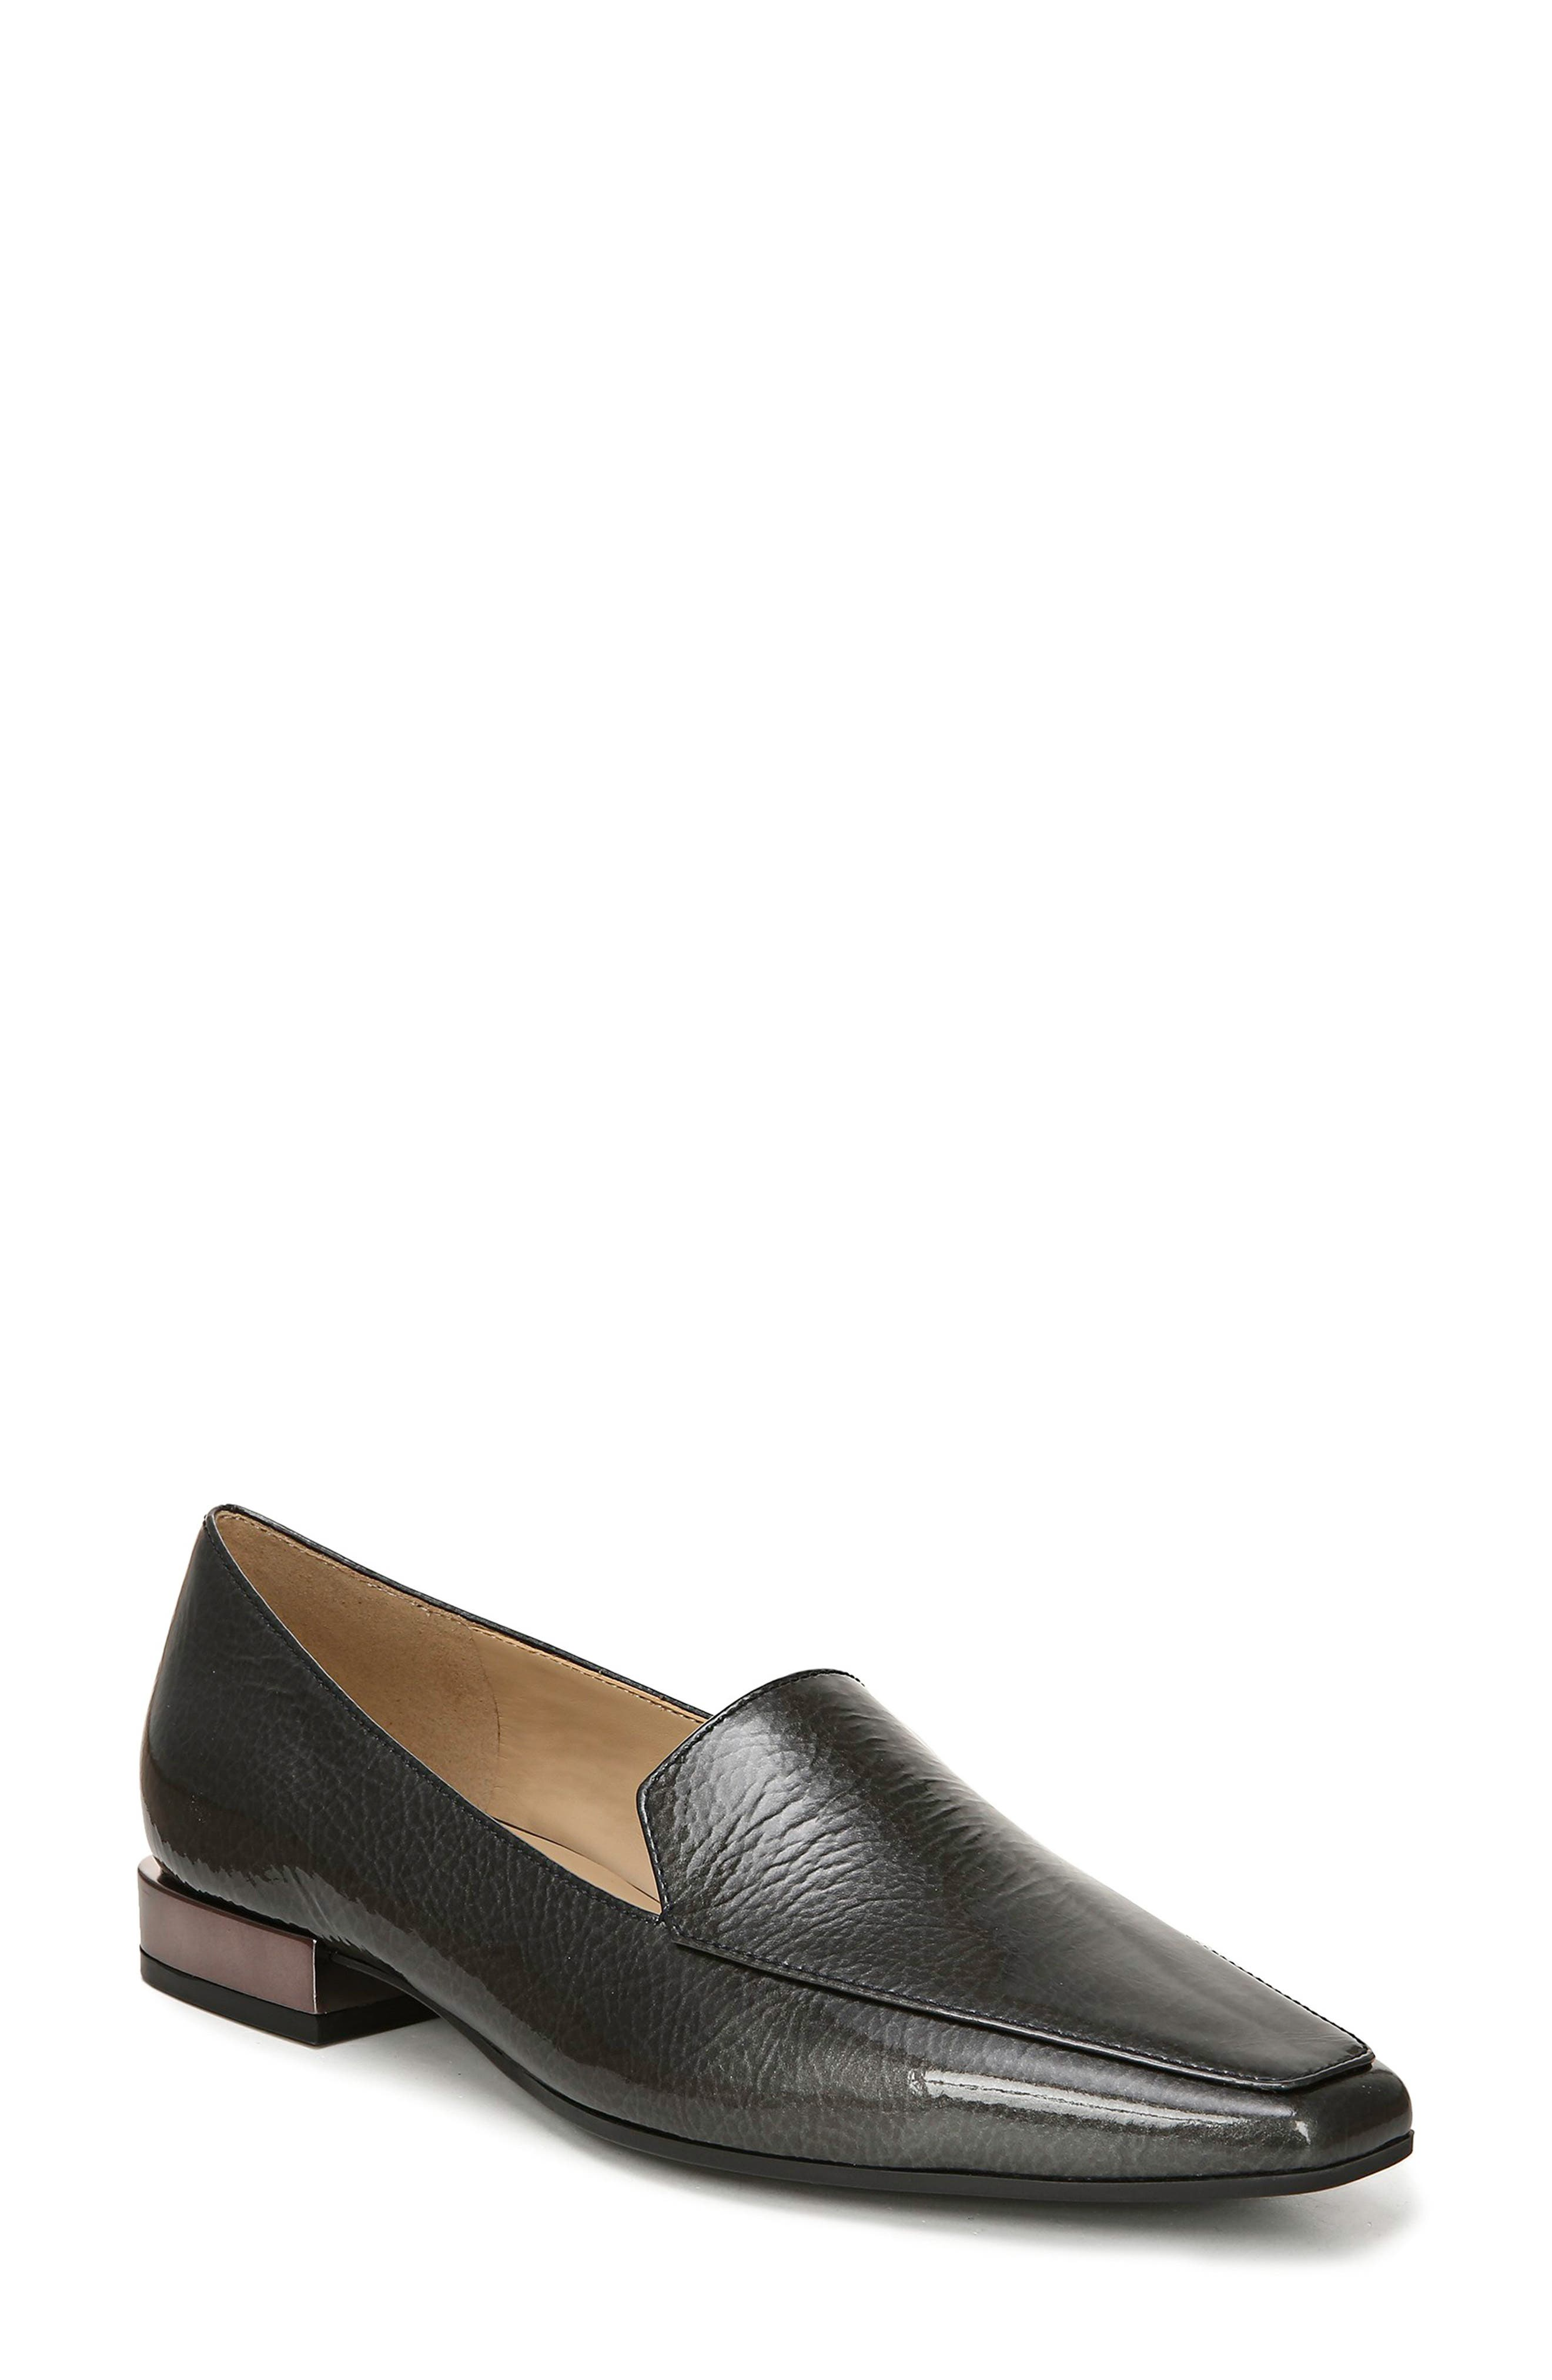 Naturalizer Clea Loafer, Metallic